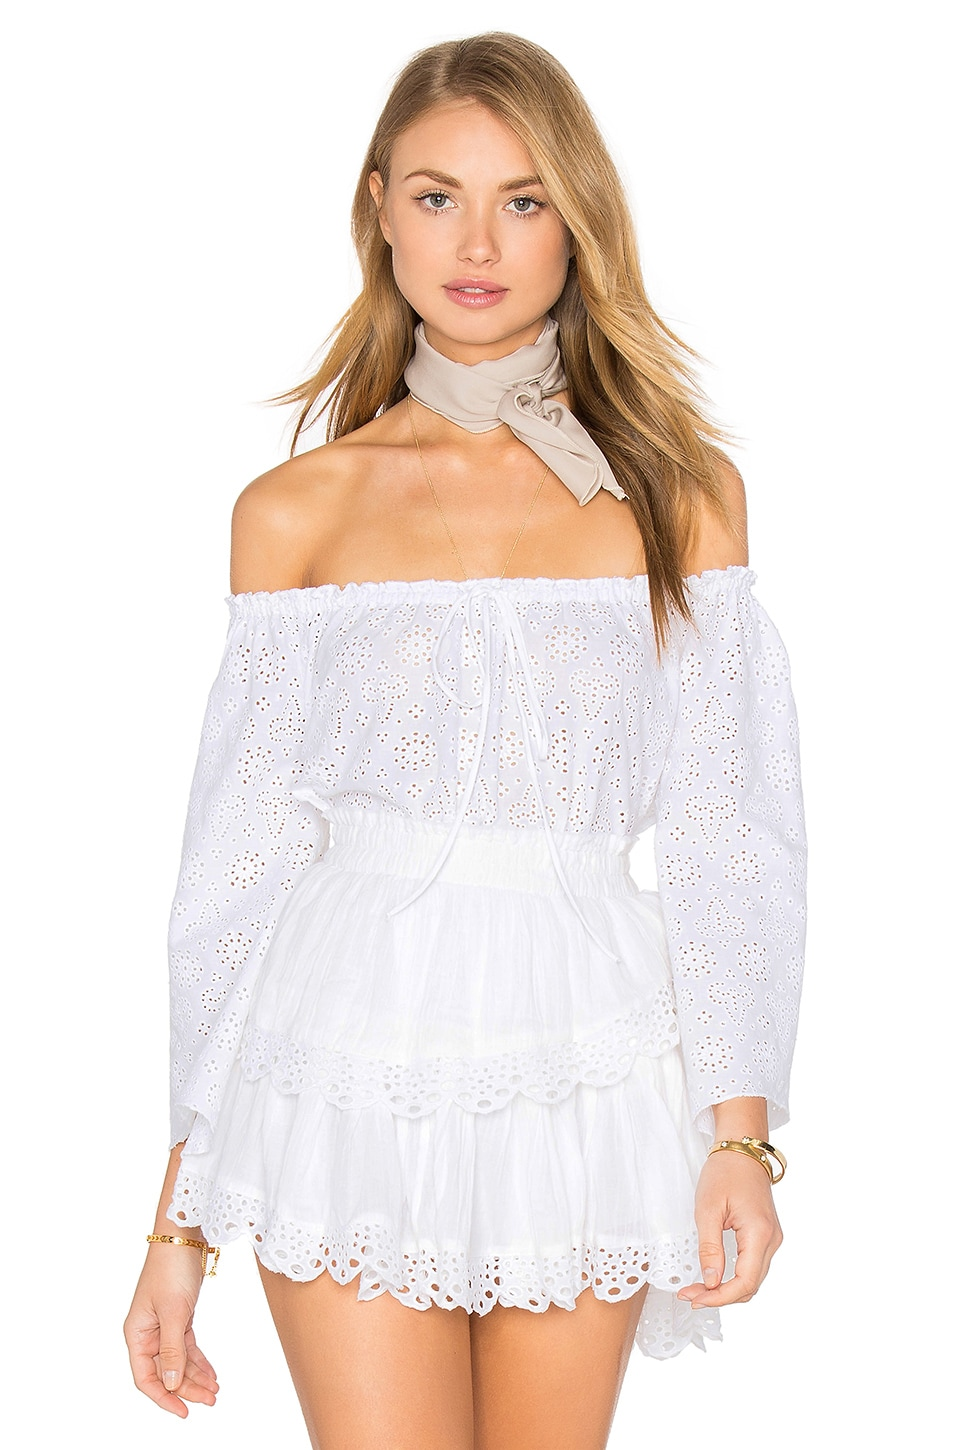 LoveShackFancy Gypsy Top in White